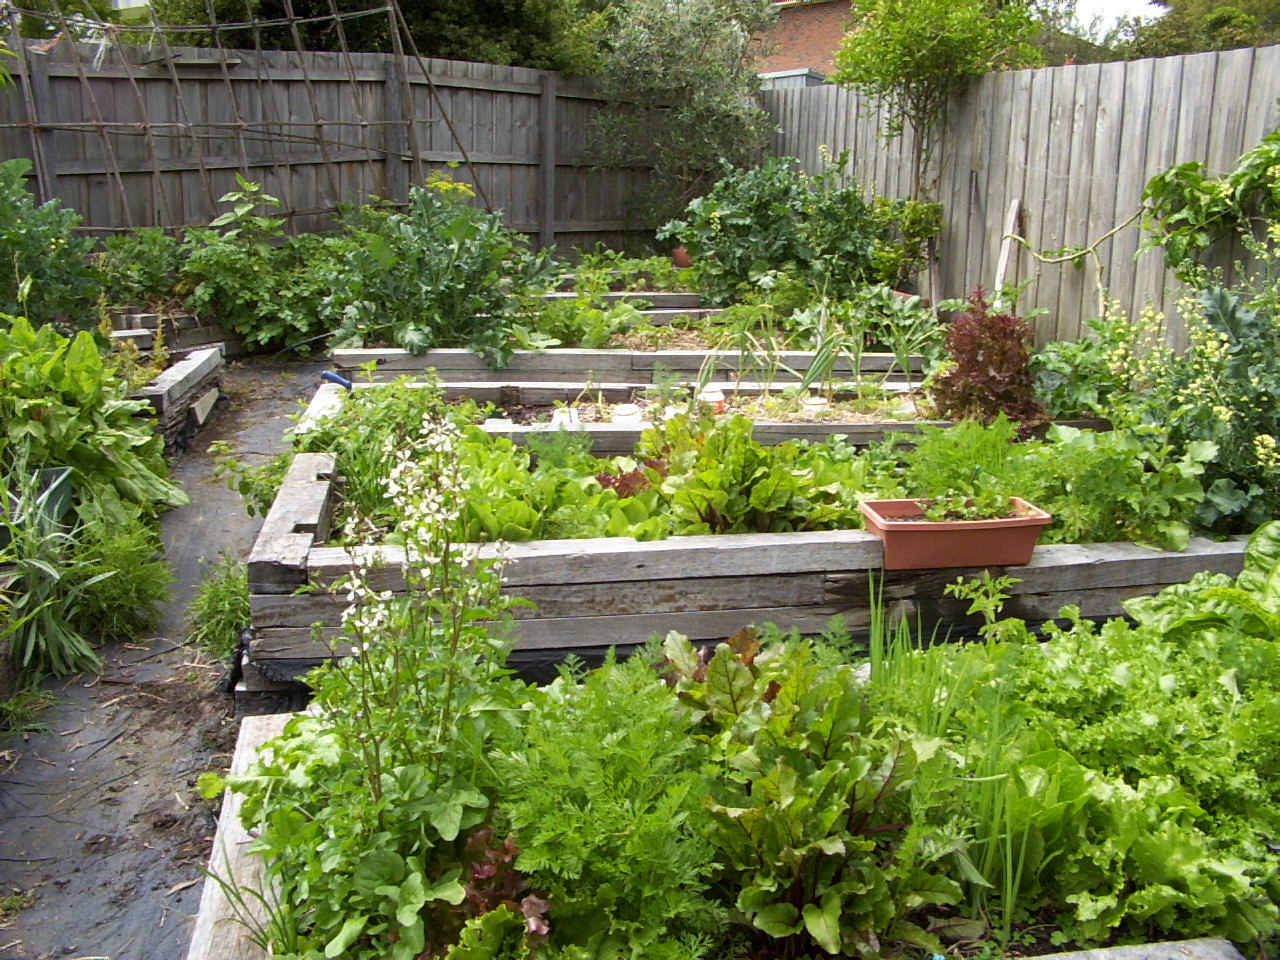 Small farm sustainable living vegie patch examples for Creating a small garden